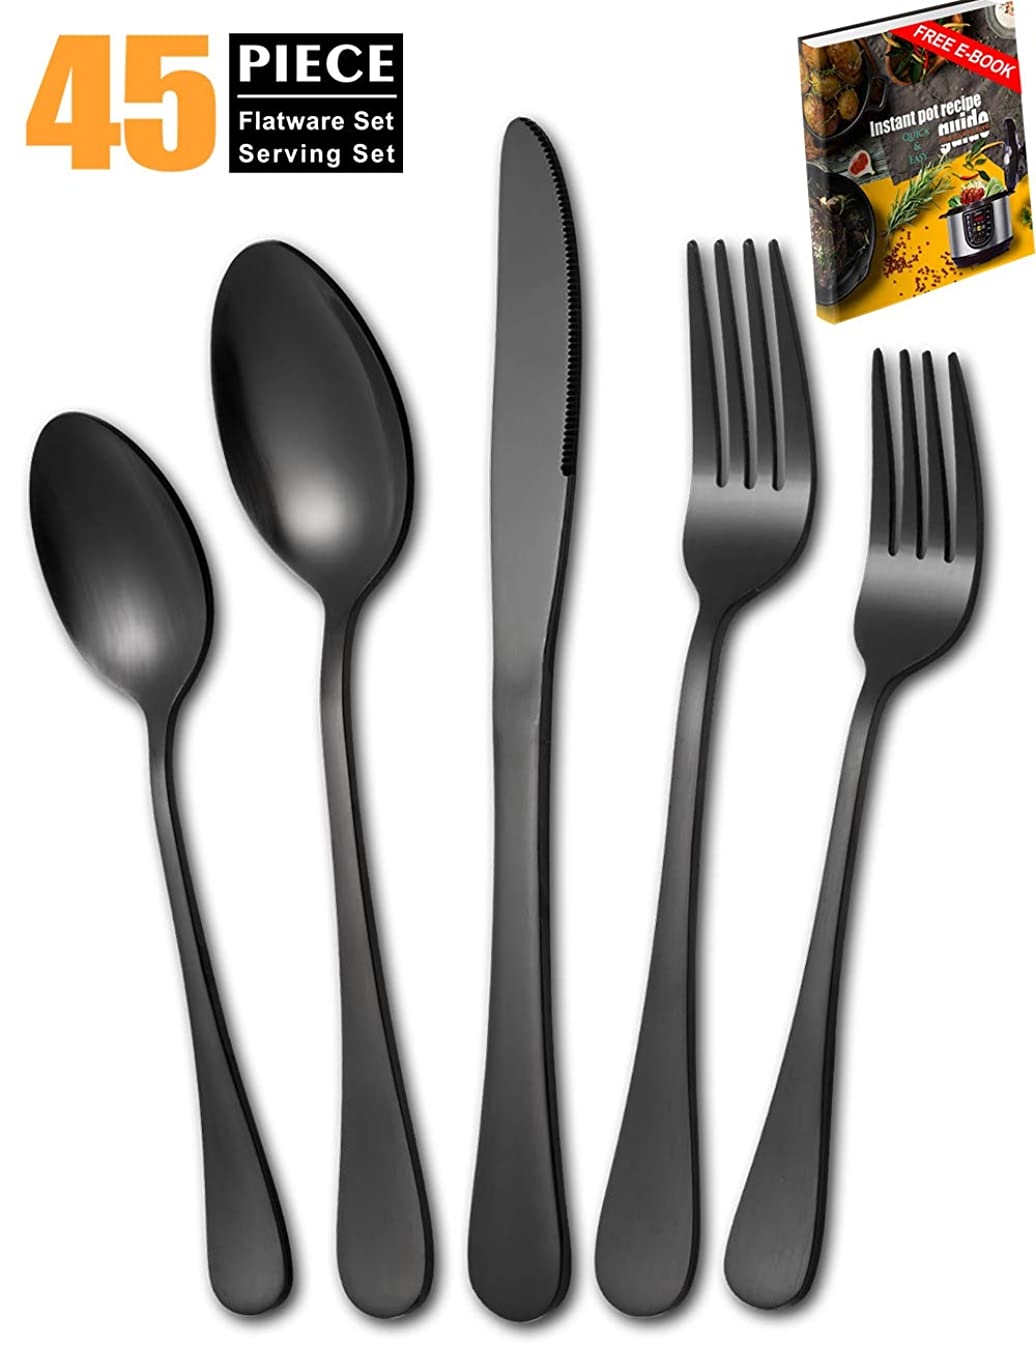 Matte-Black-Silverware-Set, 45 Piece Stainless Steel Flatware Set Cutlery Utensil Service for 8 with Large Spoon Fork Knife Set